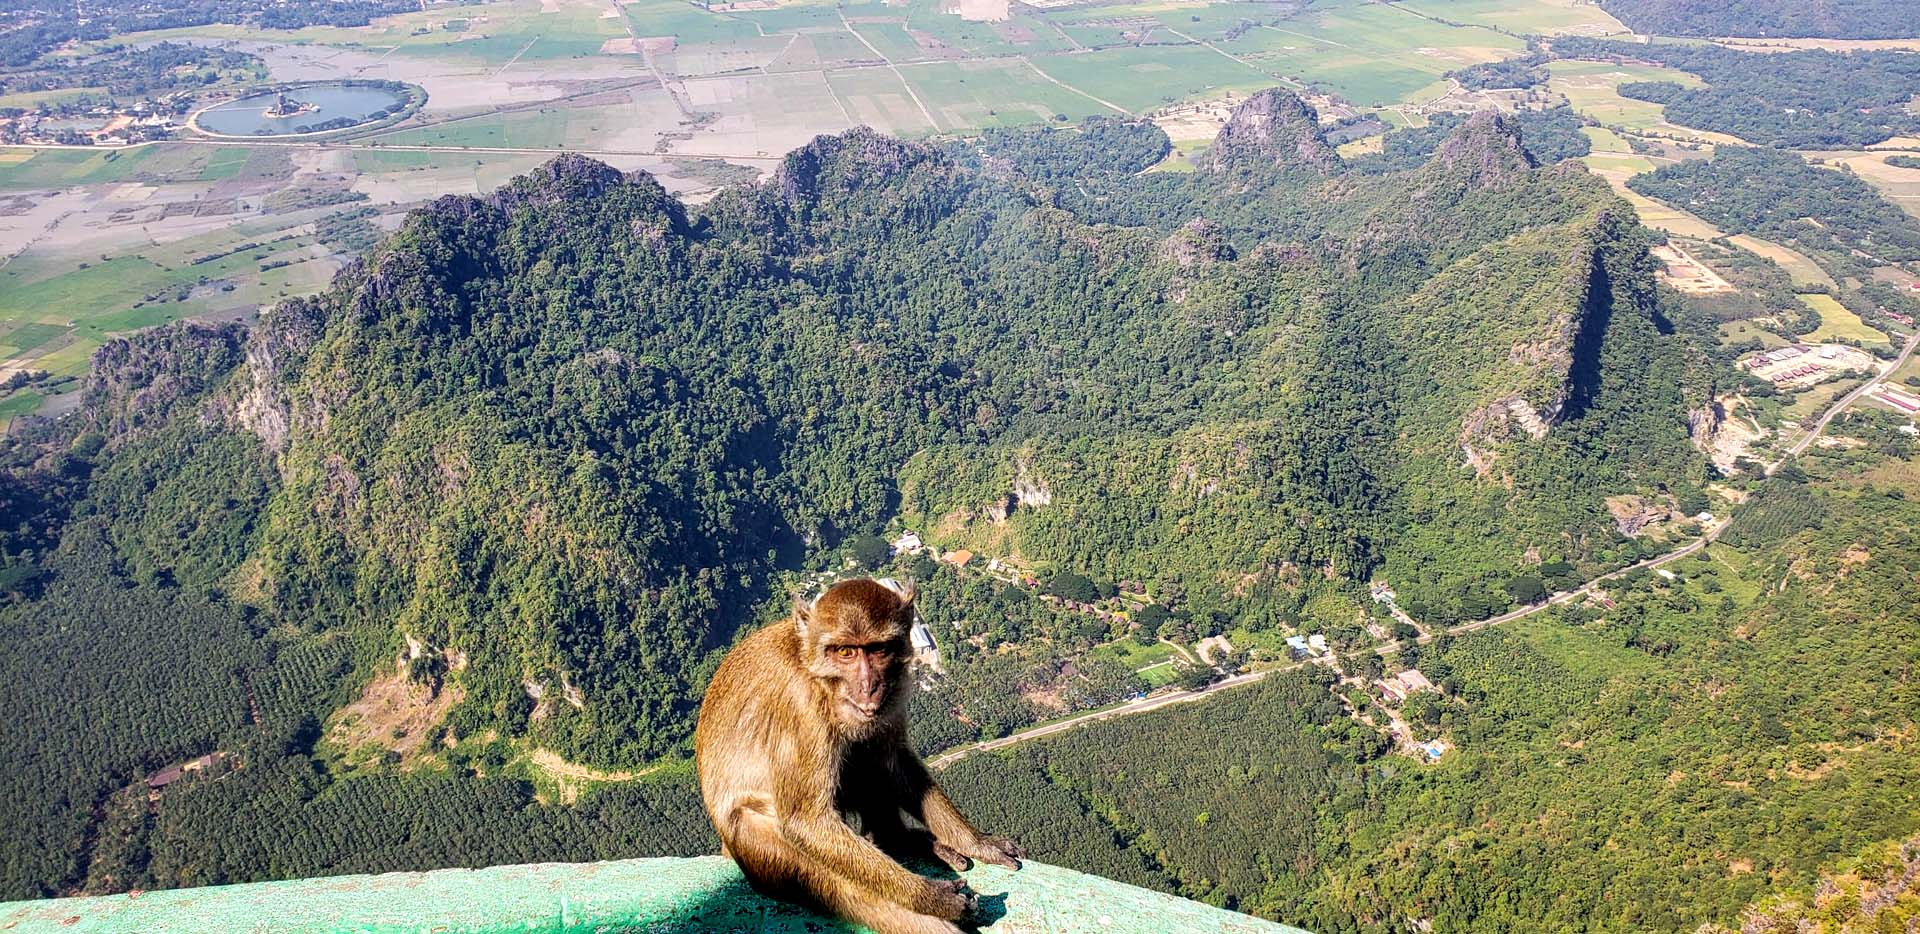 Macaque Monkey on top of Mount Zwegabin